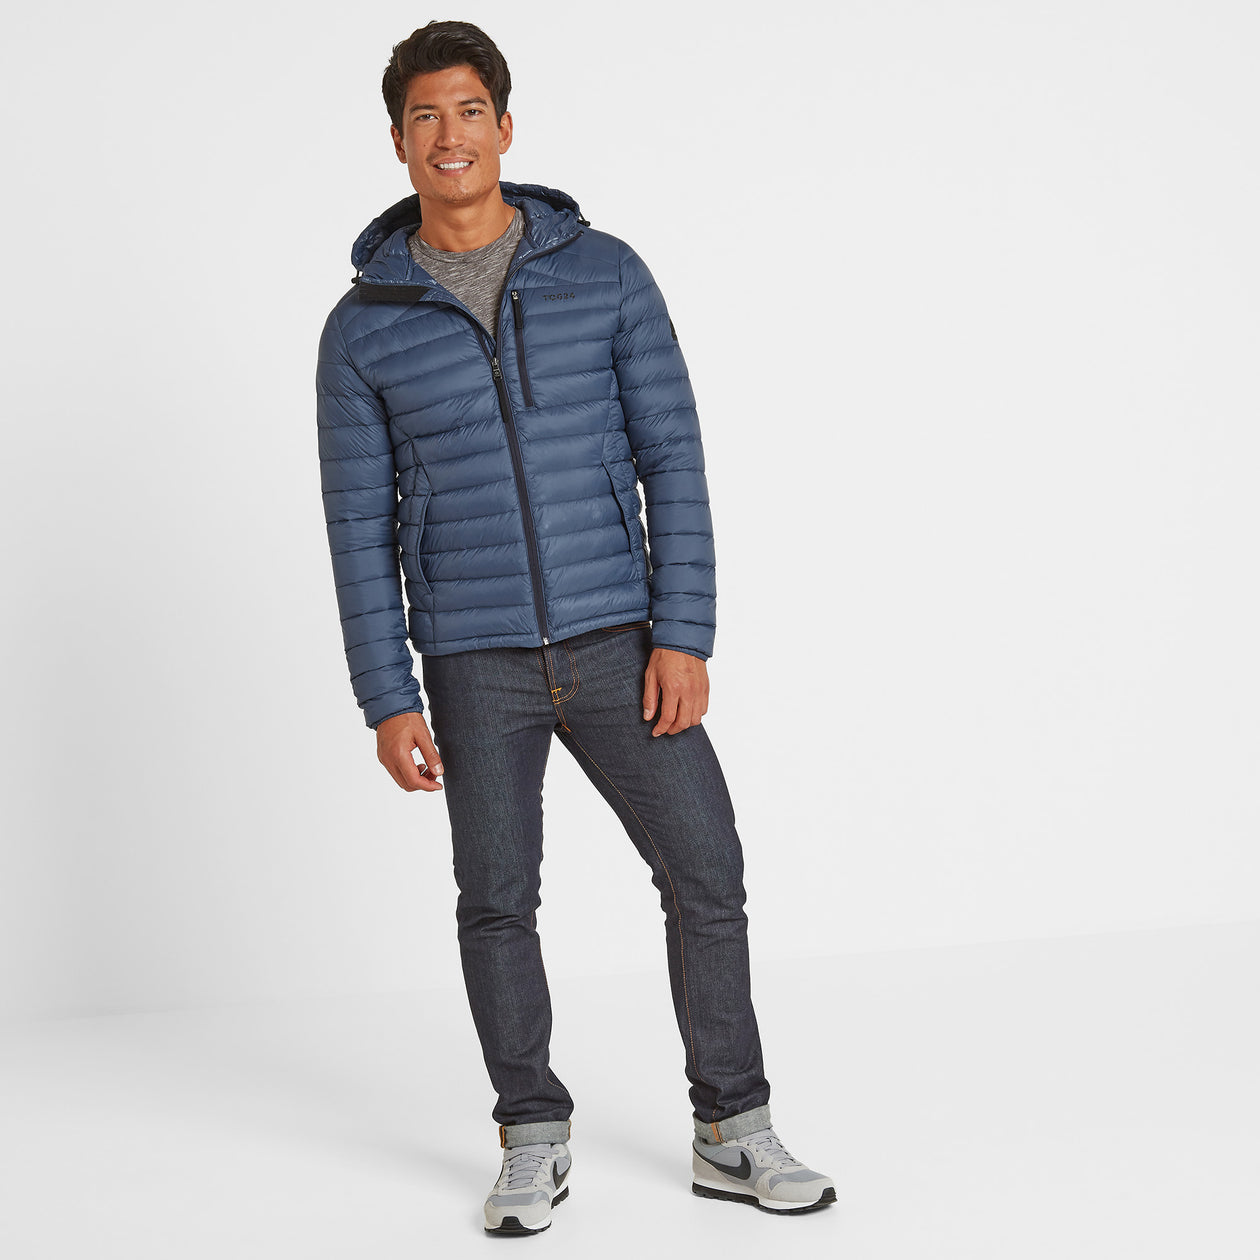 Drax Mens Hooded Down Jacket - Denim image 4